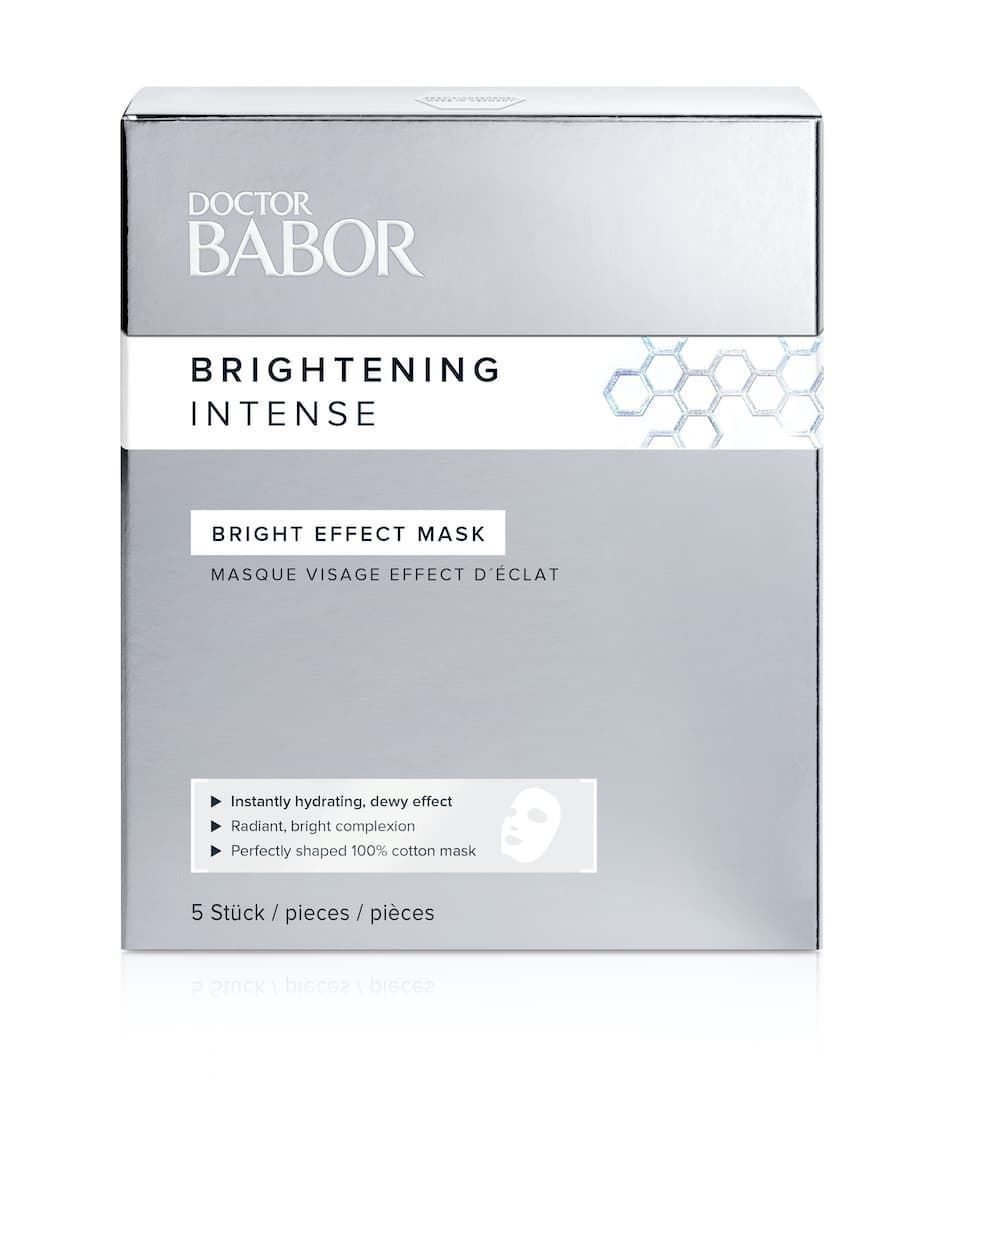 DOCTOR BABOR DAILY BRIGHT EFFECT MASK - Imagen 1